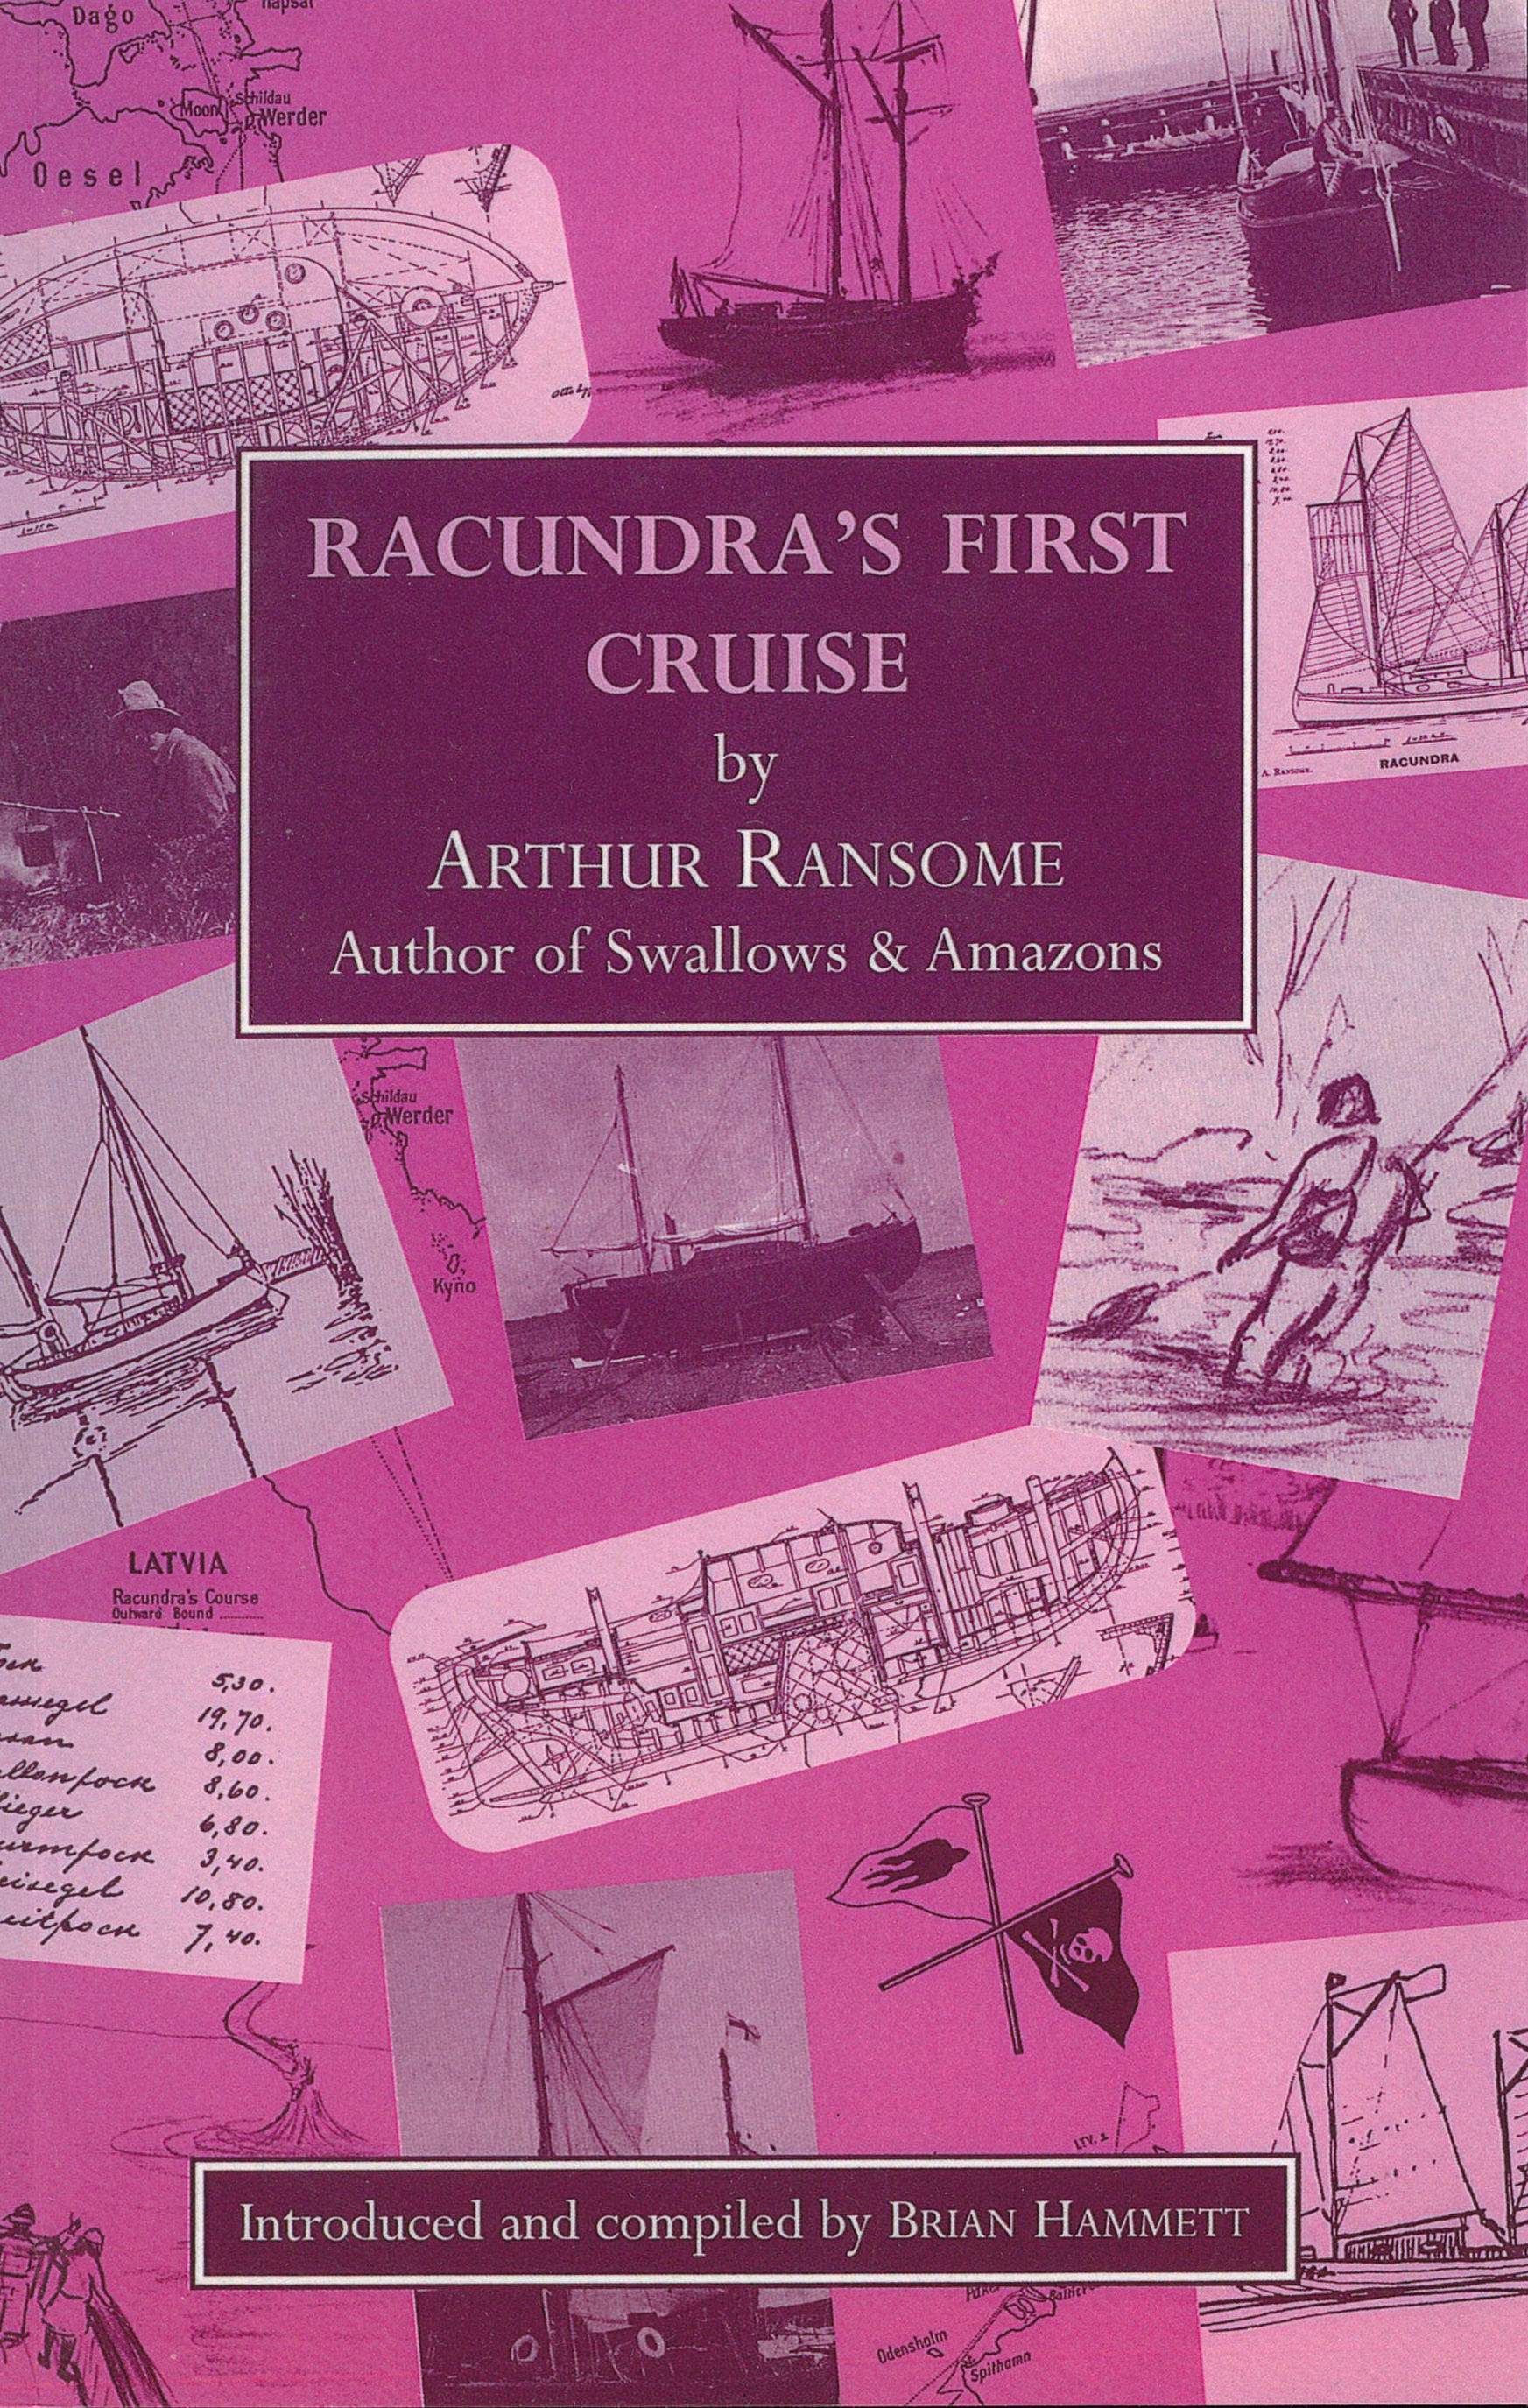 cover of john wiley edition of racundra's first cruise